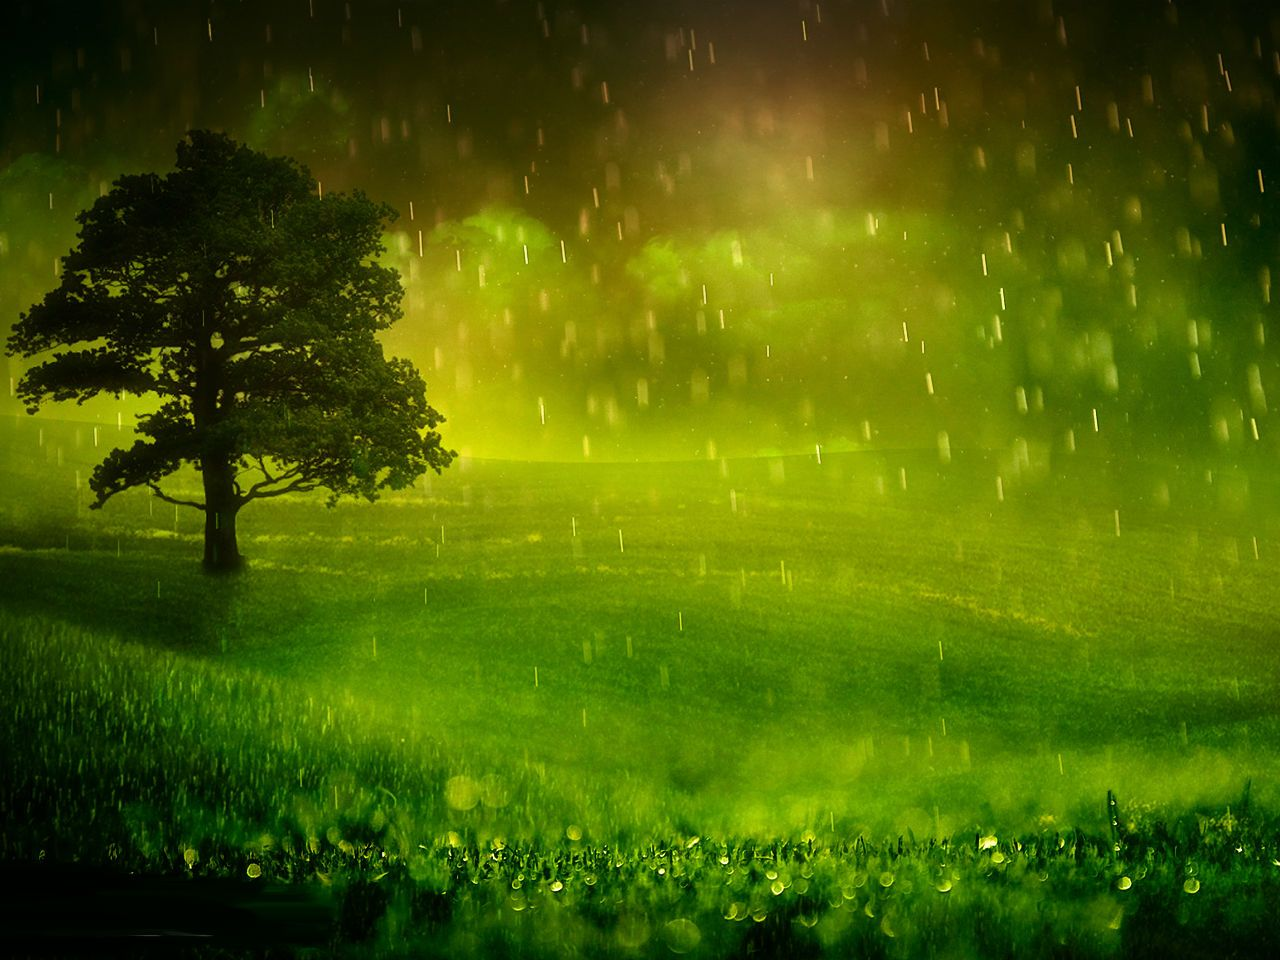 Hd wallpaper rain - Rainy Day Wallpaper Rainy Day Hd Wallpapers Pictures Images Backgrounds